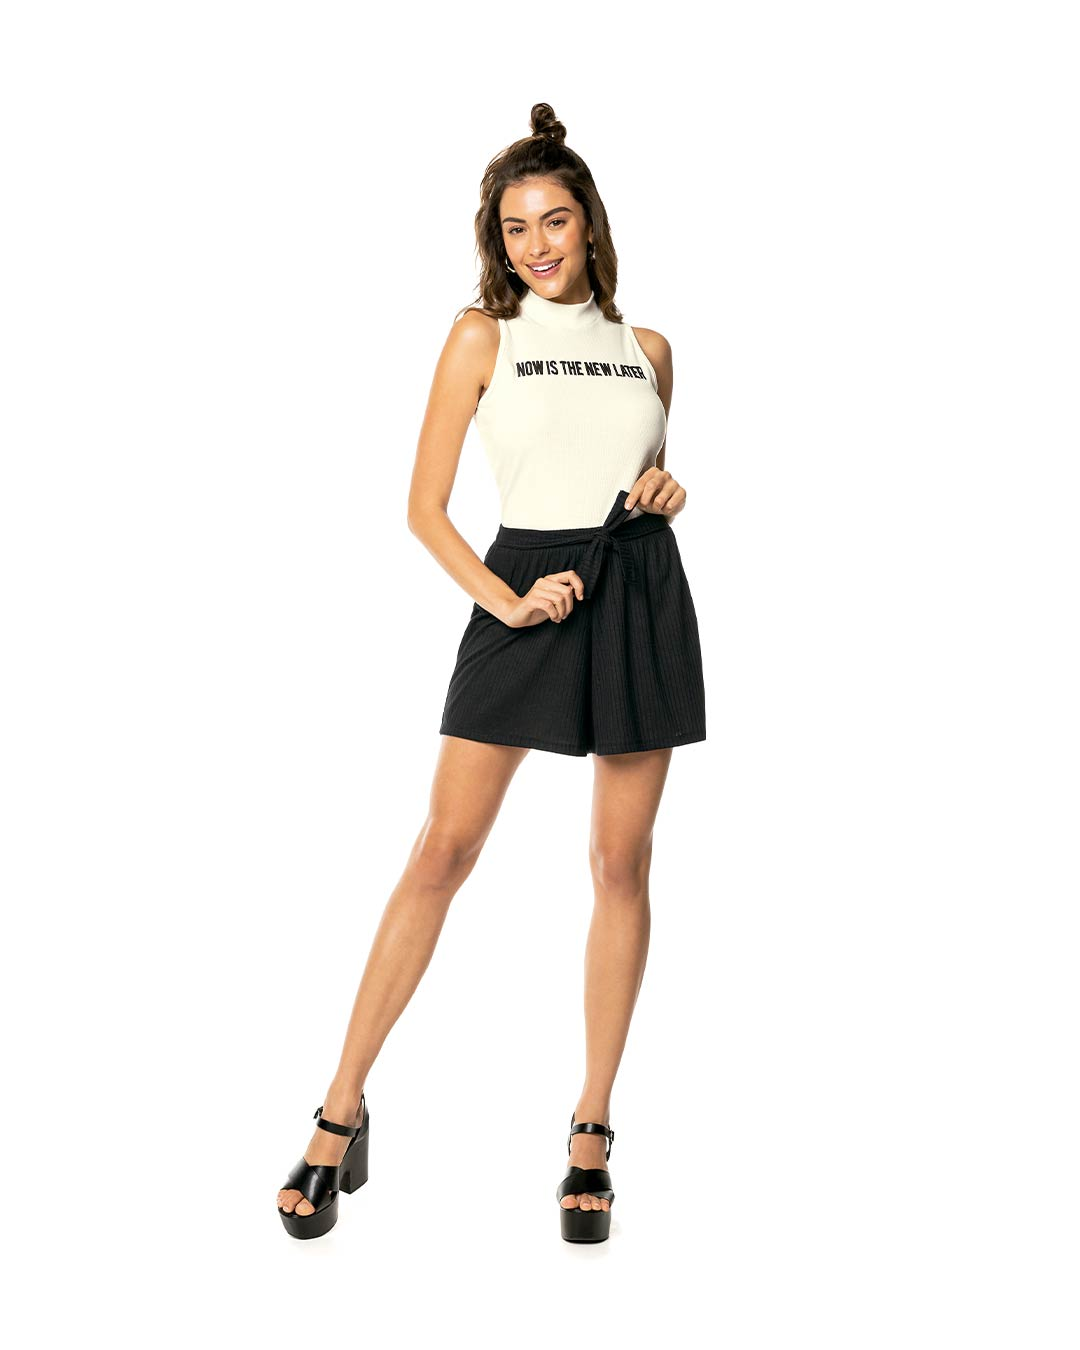 Blusa Feminina Now Is The New Later - Lecimar